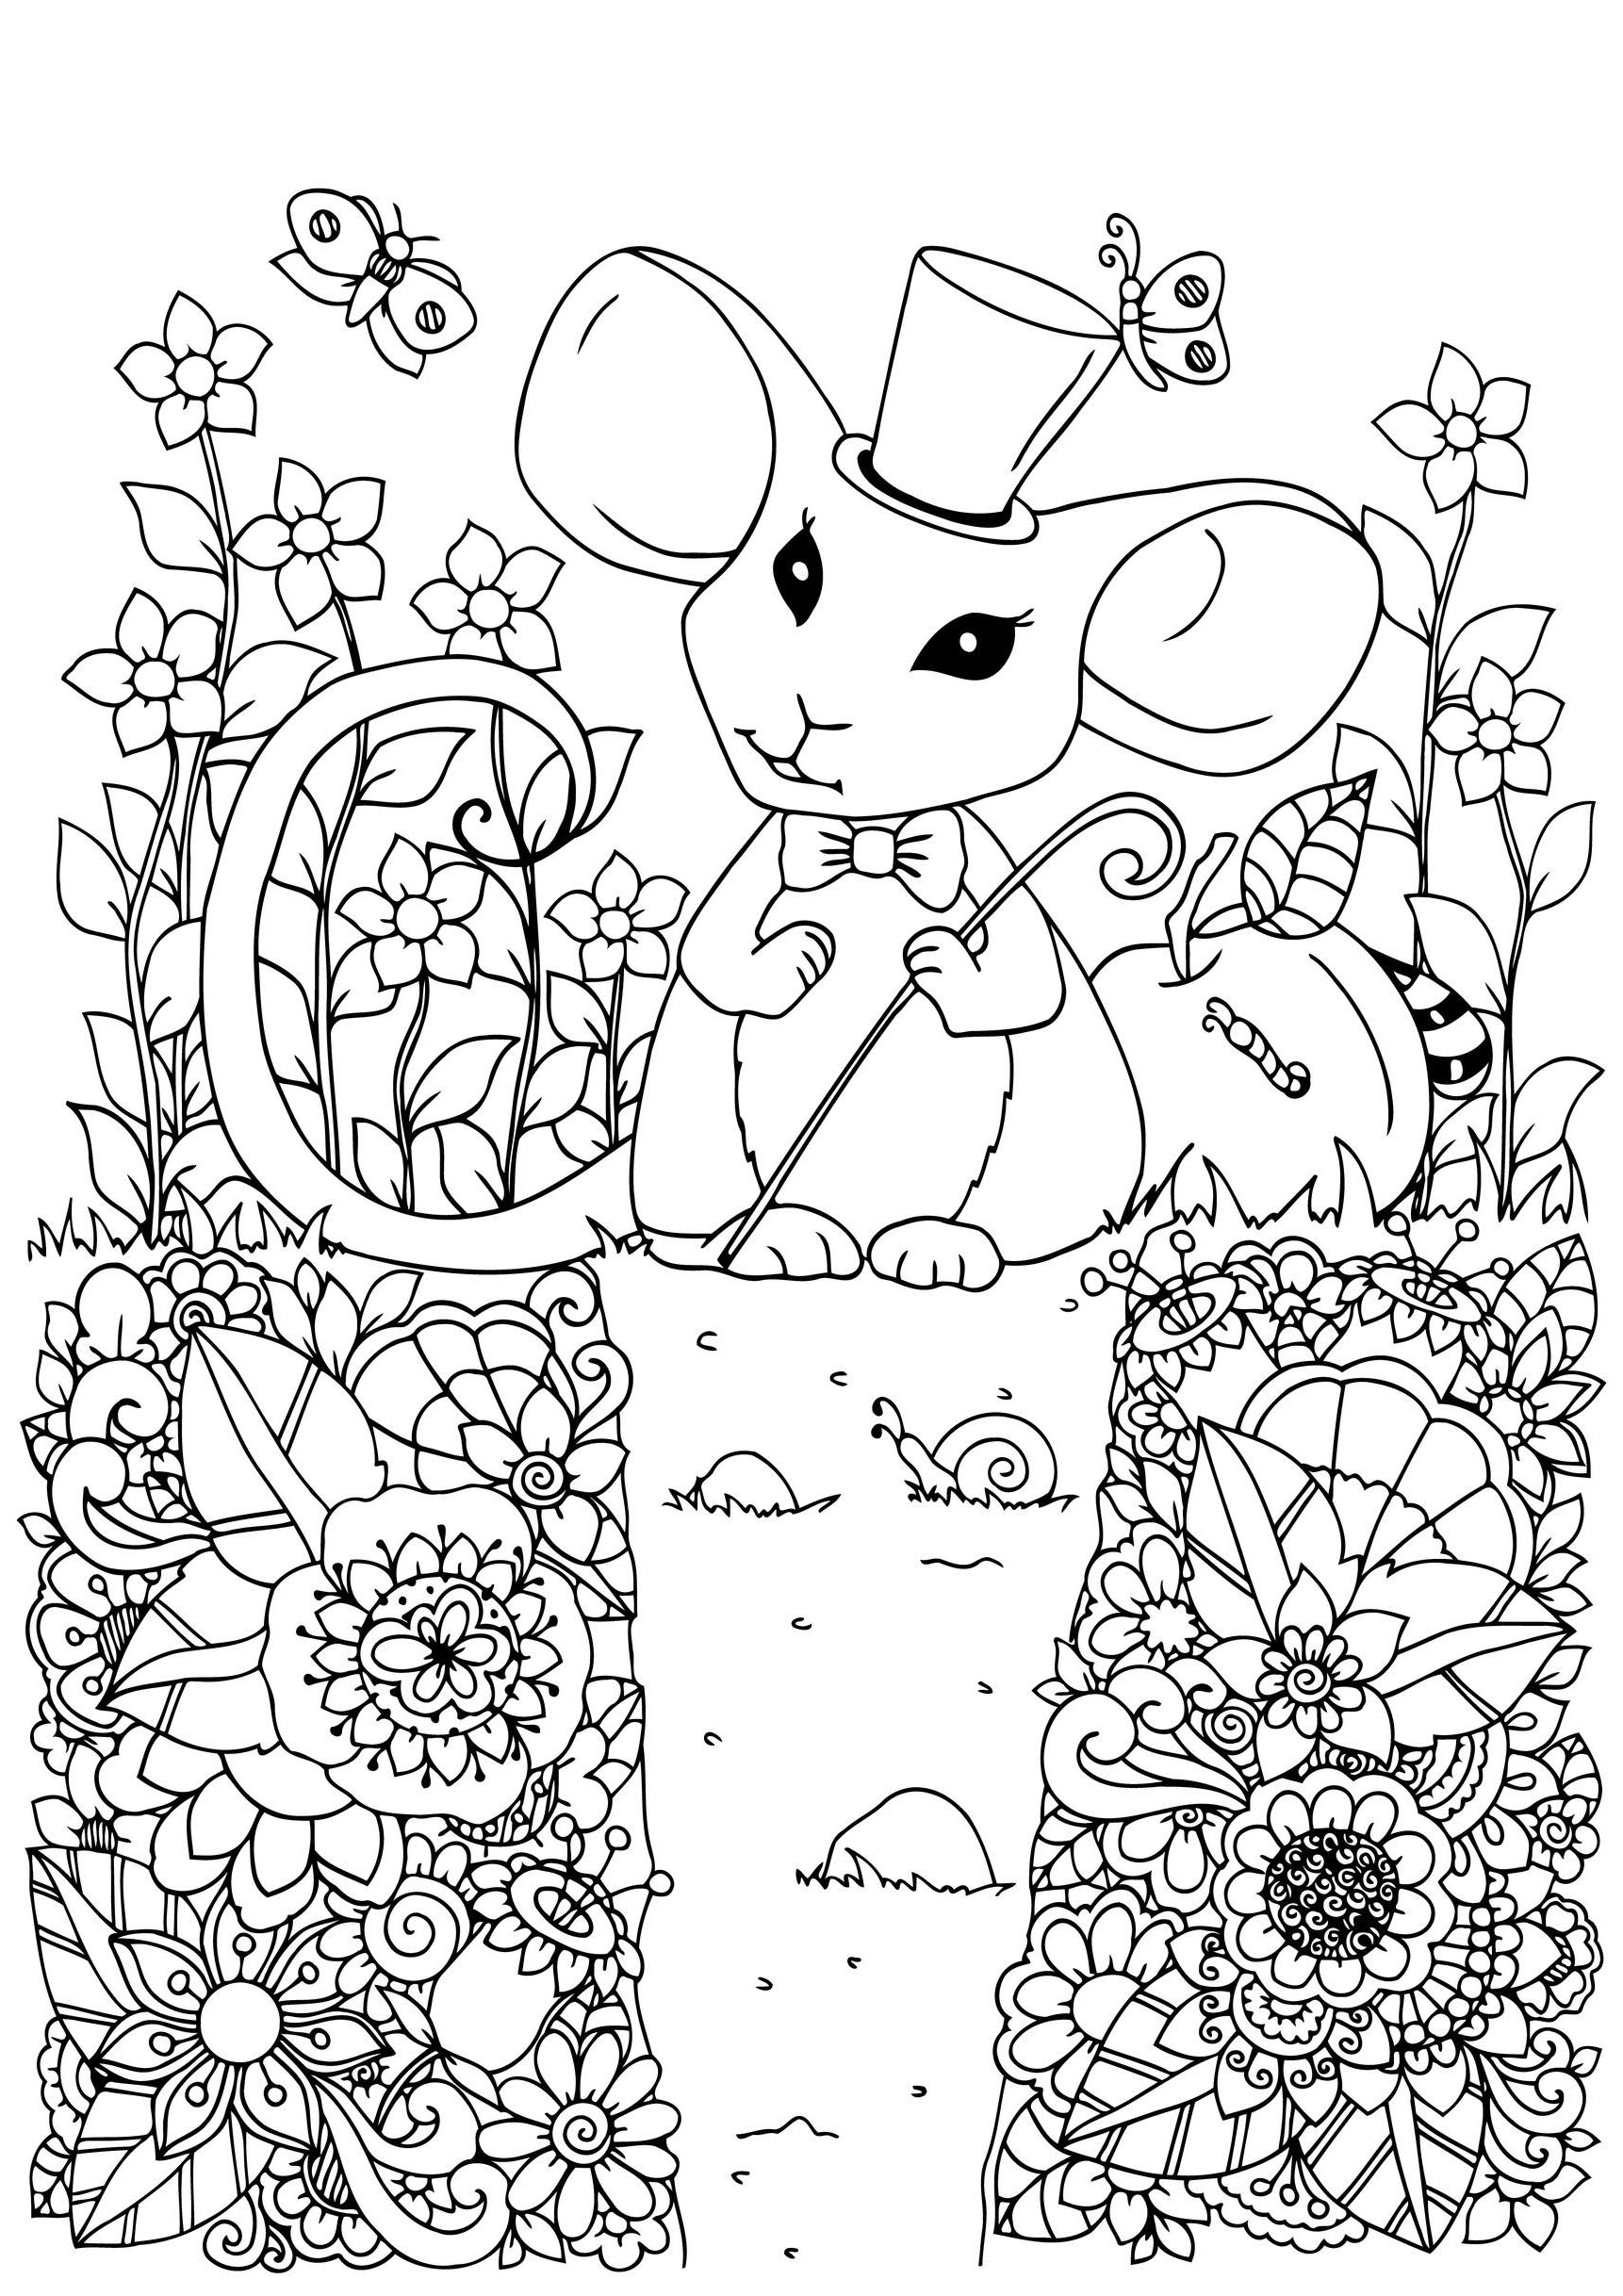 coloring pictures to color for kids printable coloring pages for kids coloring pages for kids to for pictures color kids coloring